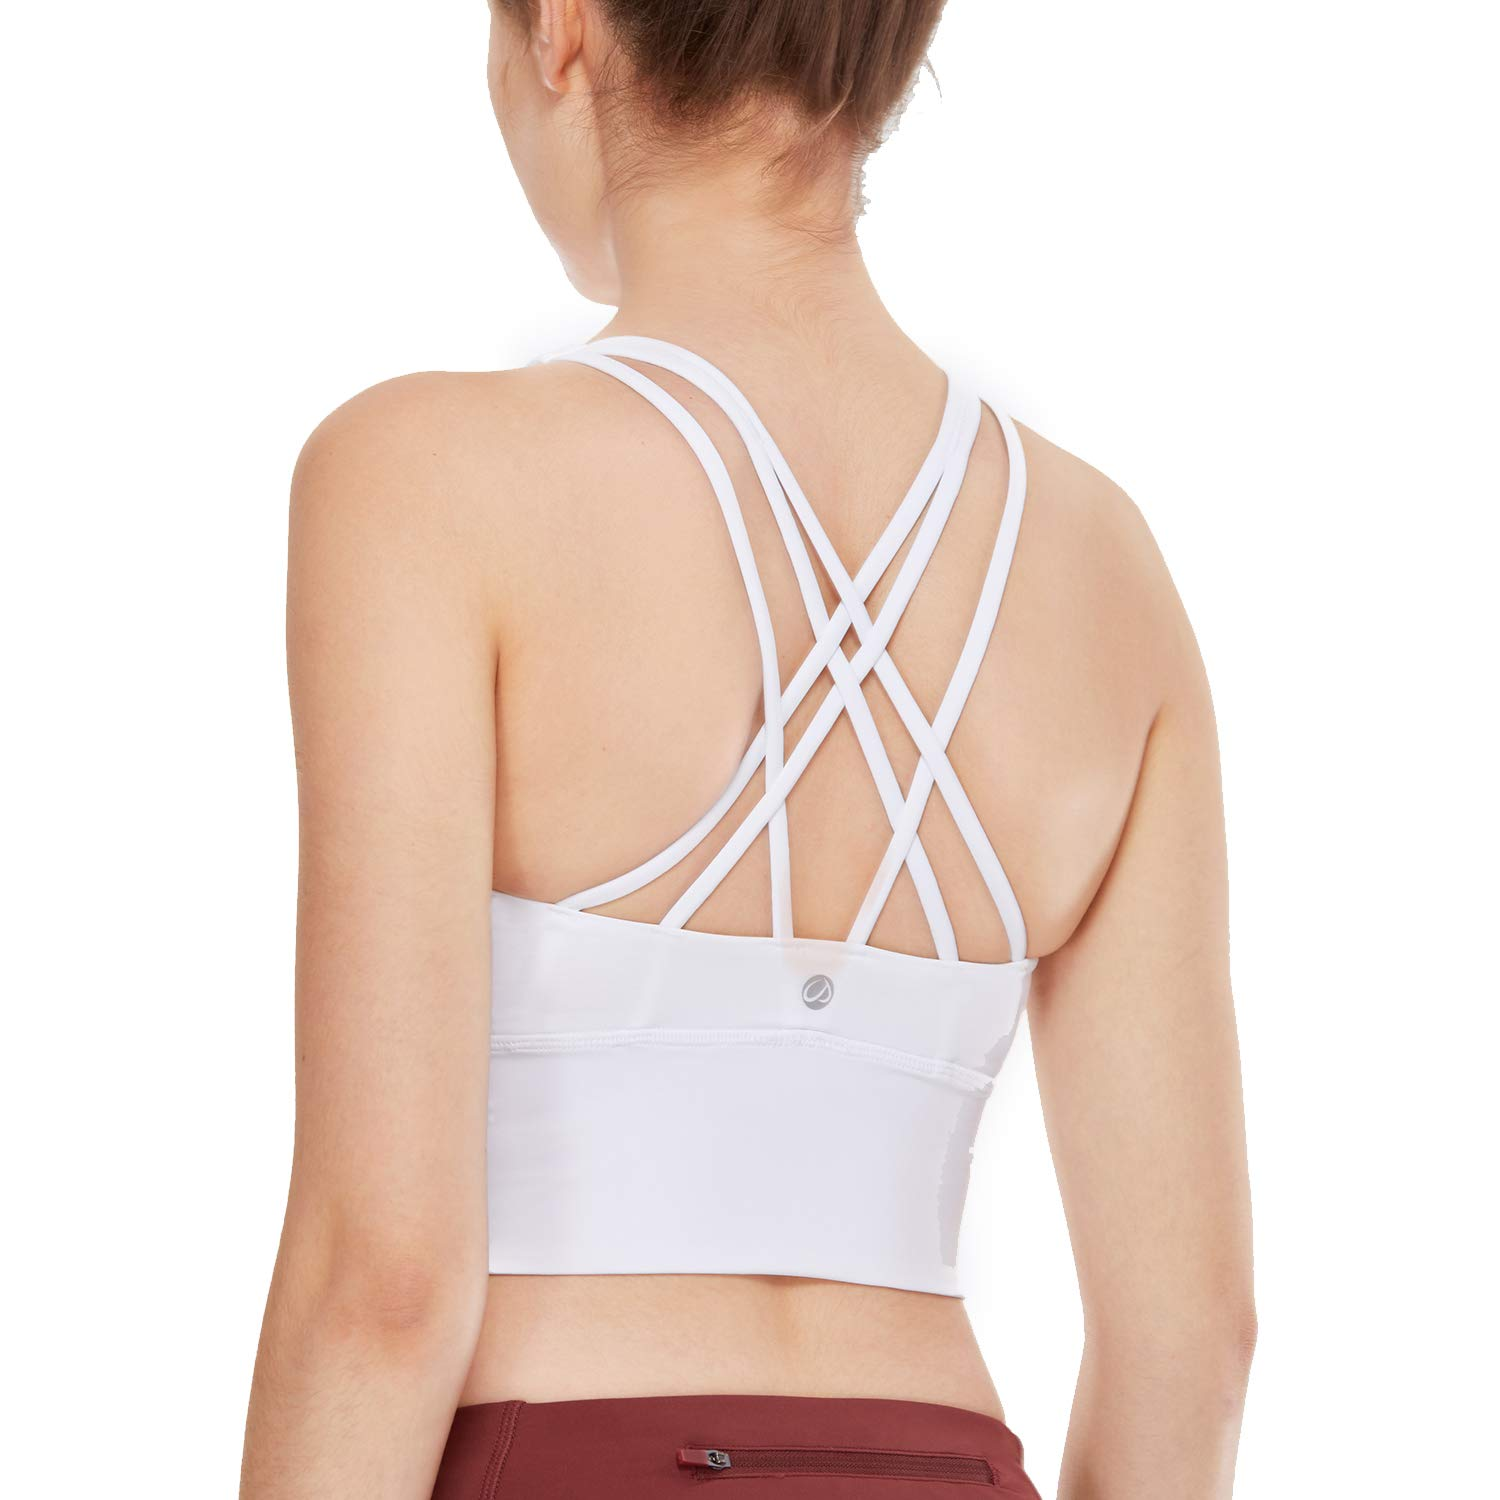 CRZ YOGA Strappy Sports Bras for Women Longline Wirefree Padded Medium Support Yoga Bra Top White L by CRZ YOGA